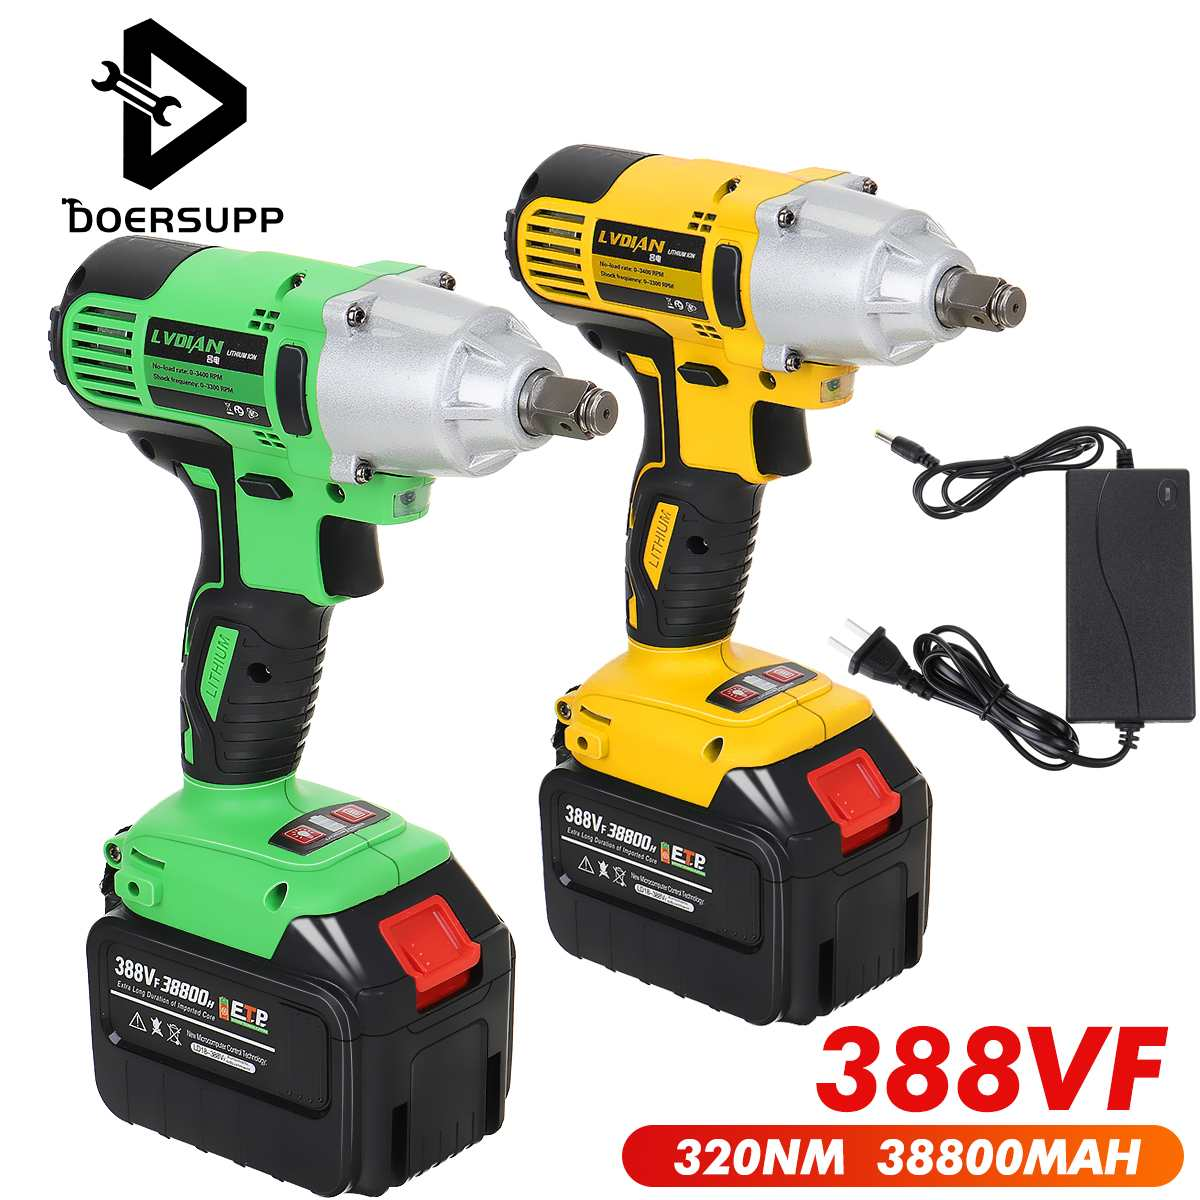 388VF 320Nm Rechargeable Impact Electric Wrench Brushless Impact Cordless Wrench Socket Wrench Power Tool With 38800mah Battery